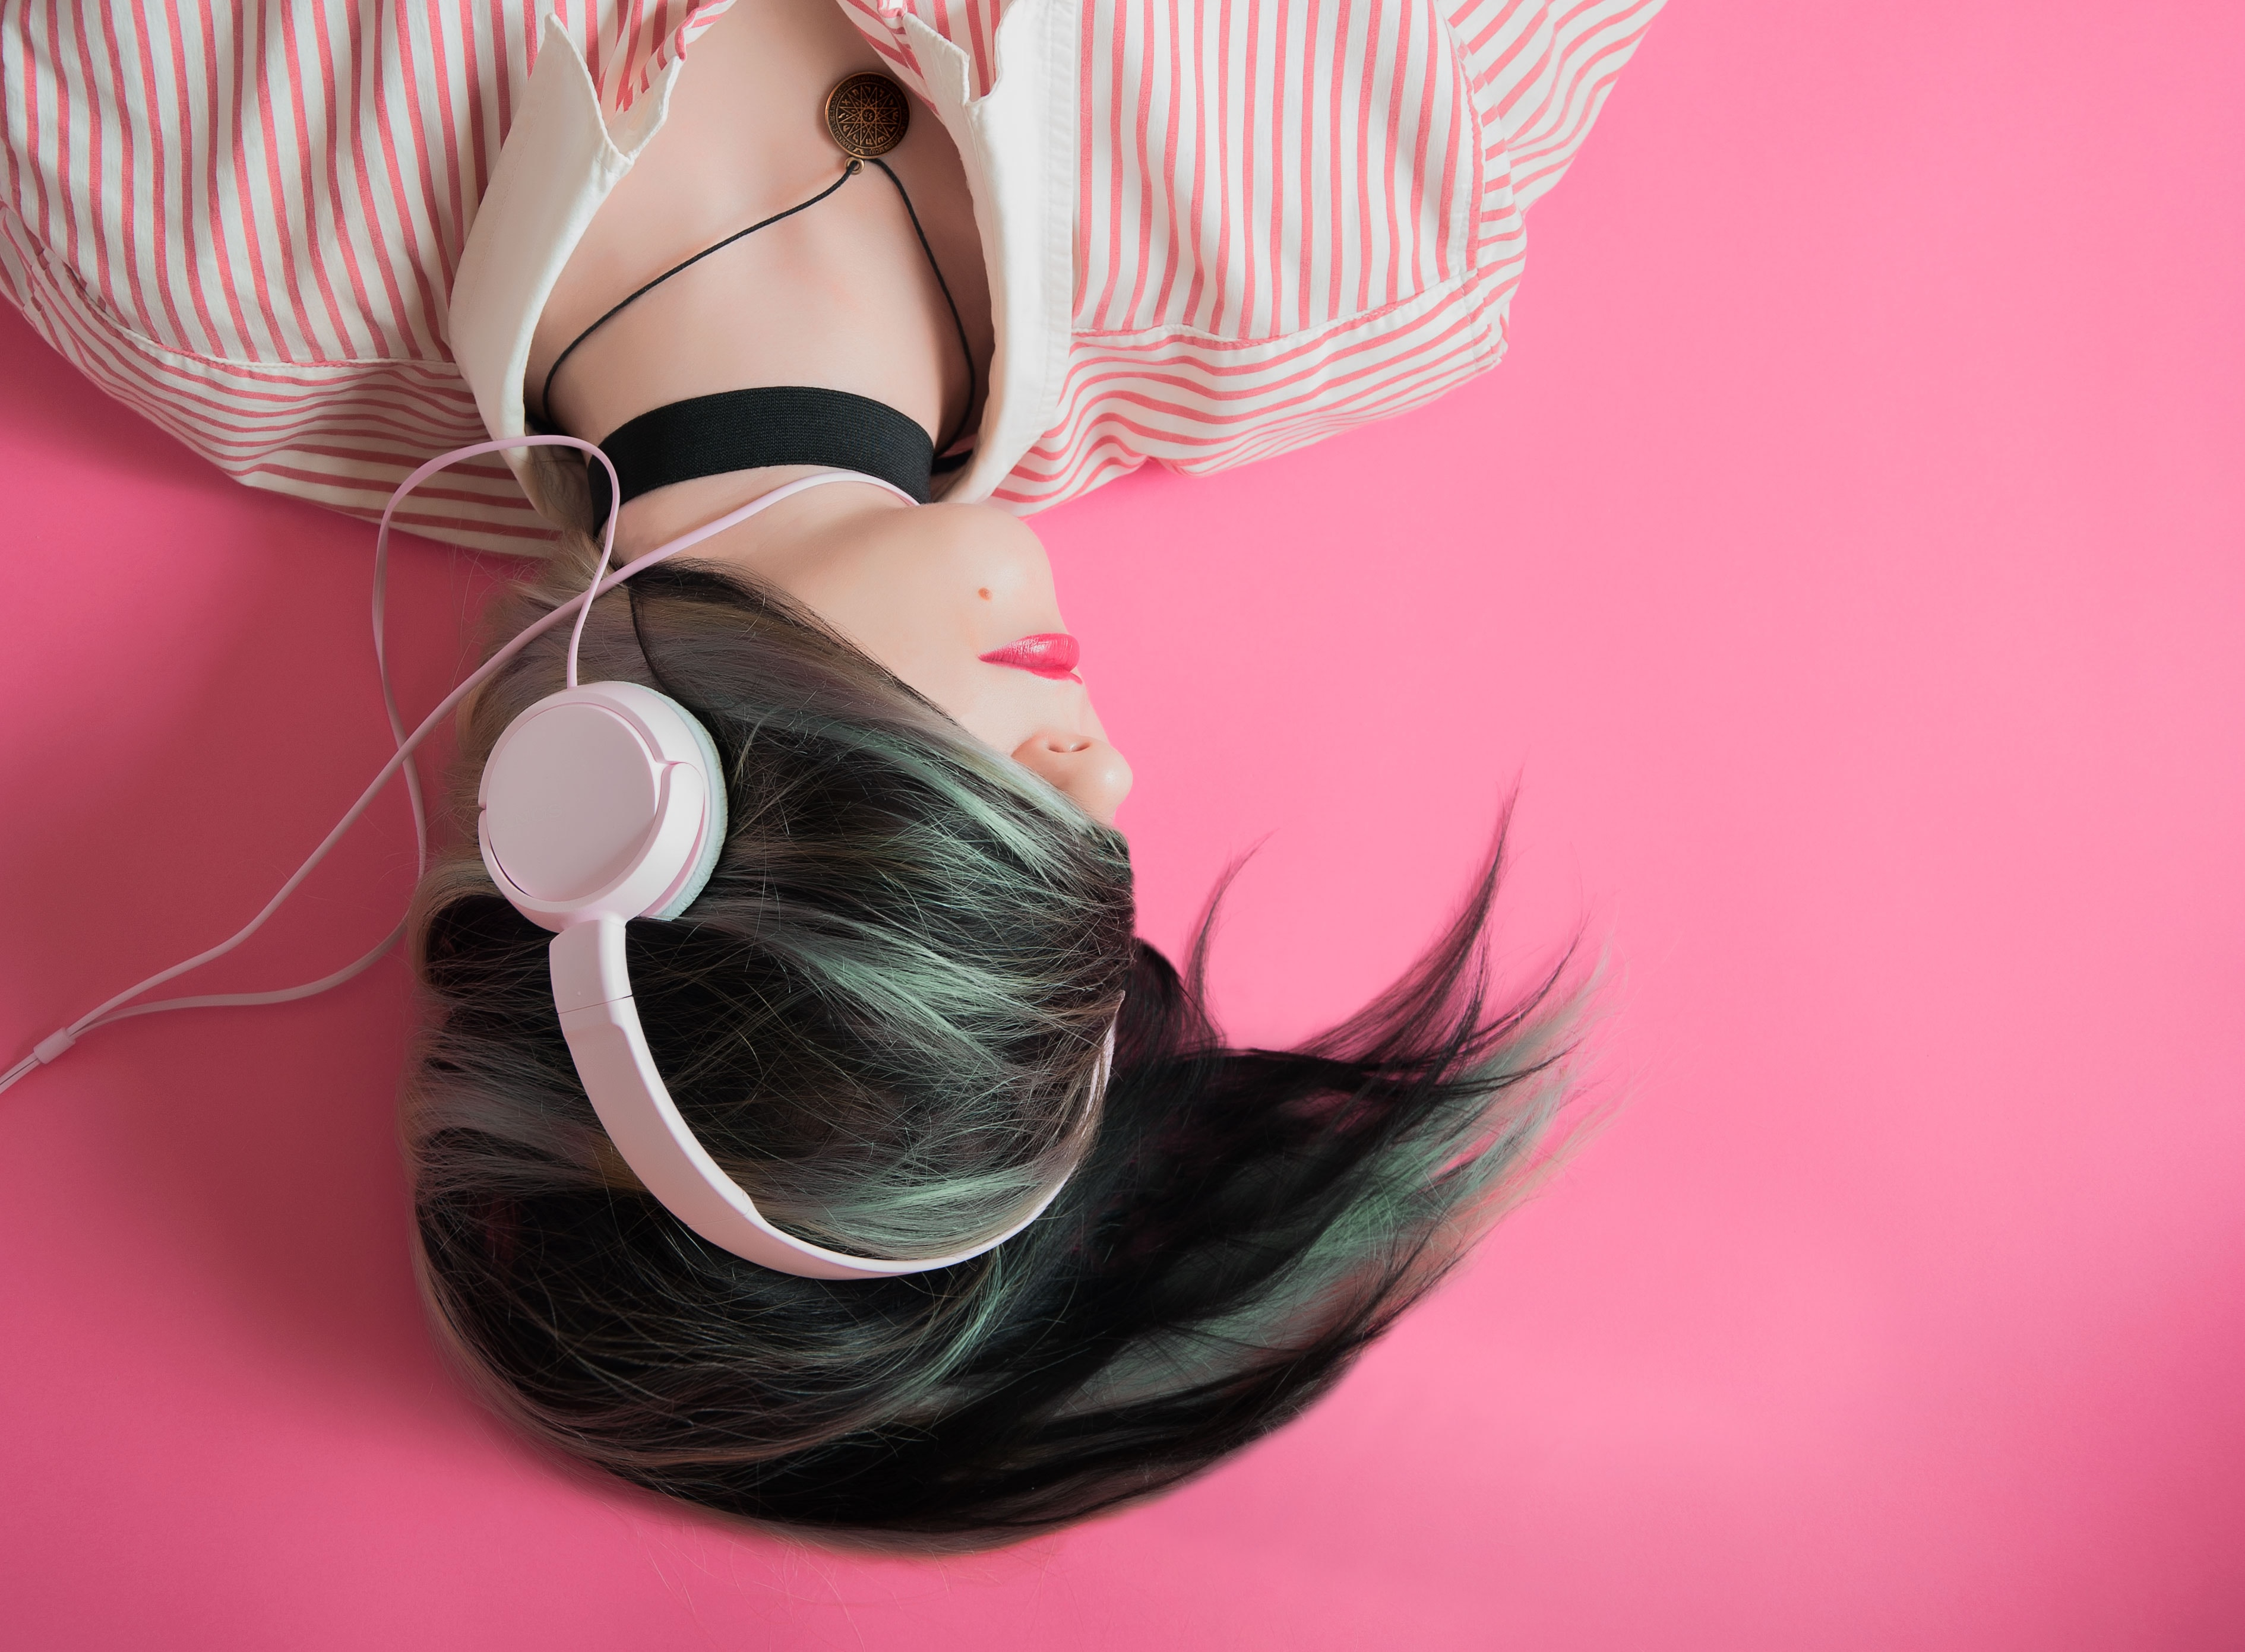 Looking To Buy a New Pair of Headphones? Here Are A Few Things to Keep In Mind Before You Make Your Purchase